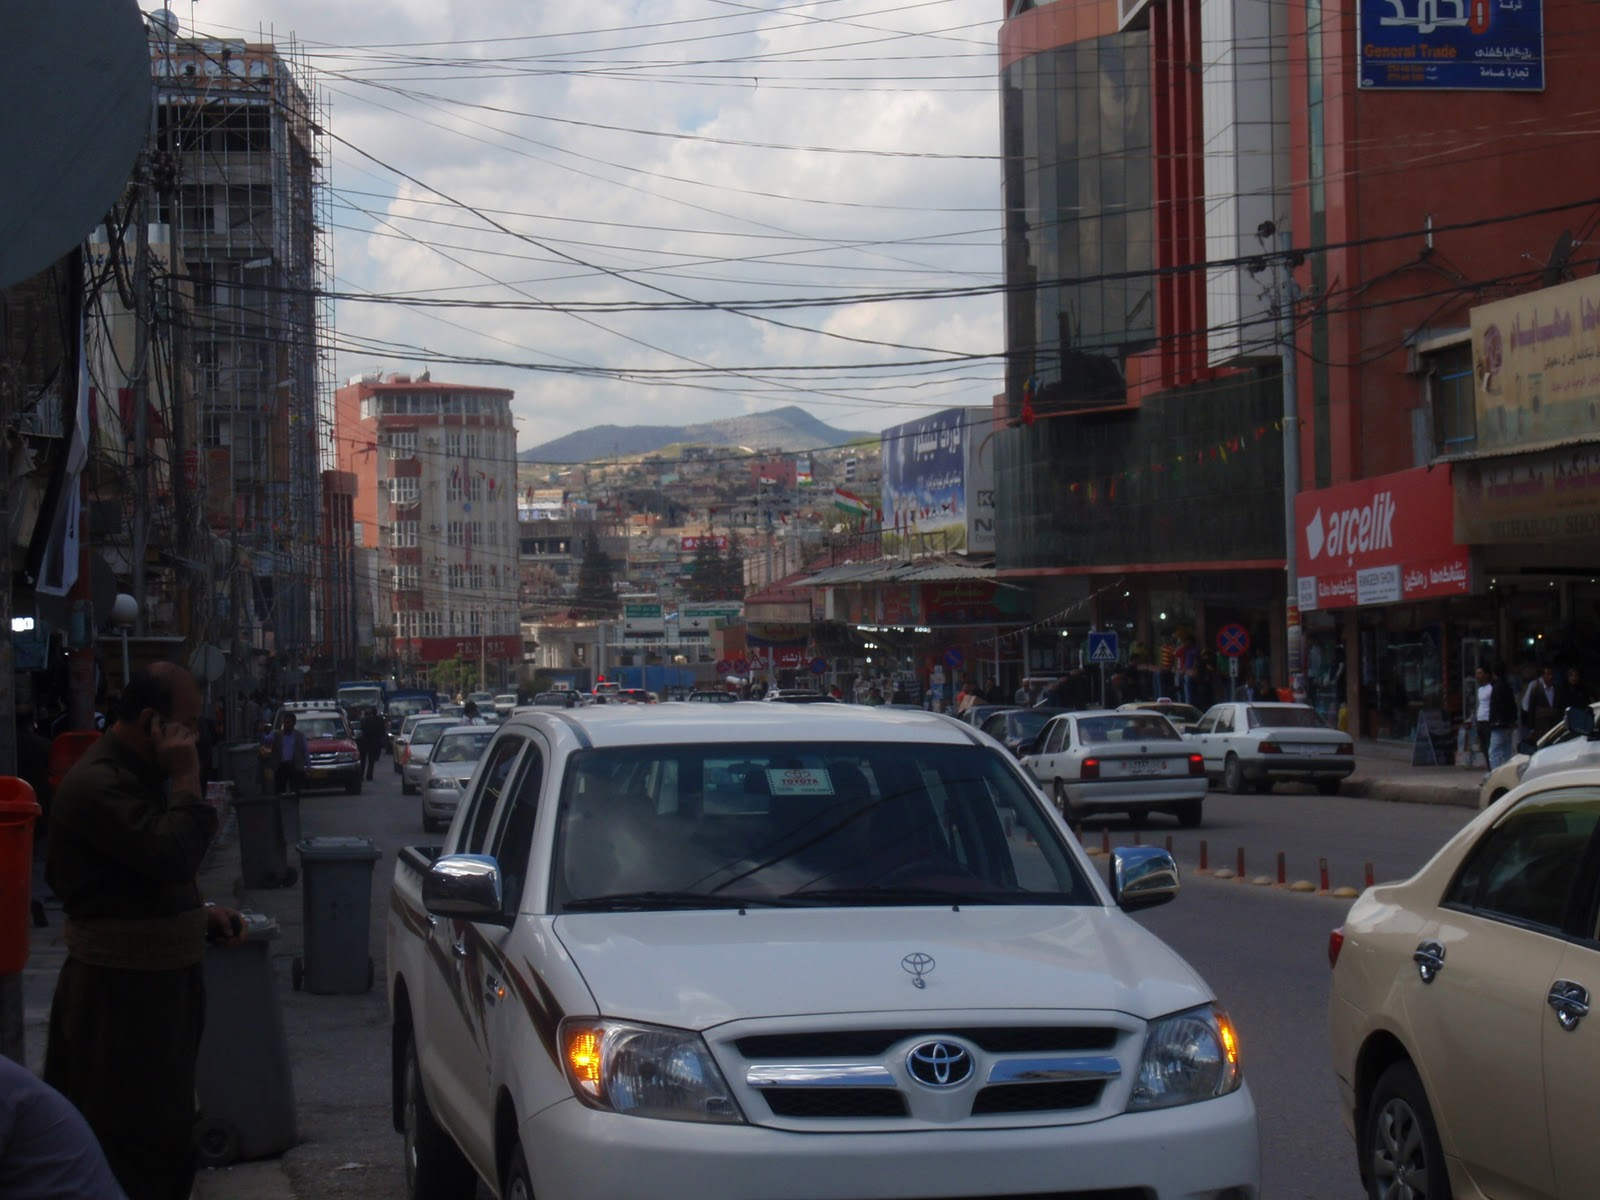 Afternoon traffic in the Duhok city